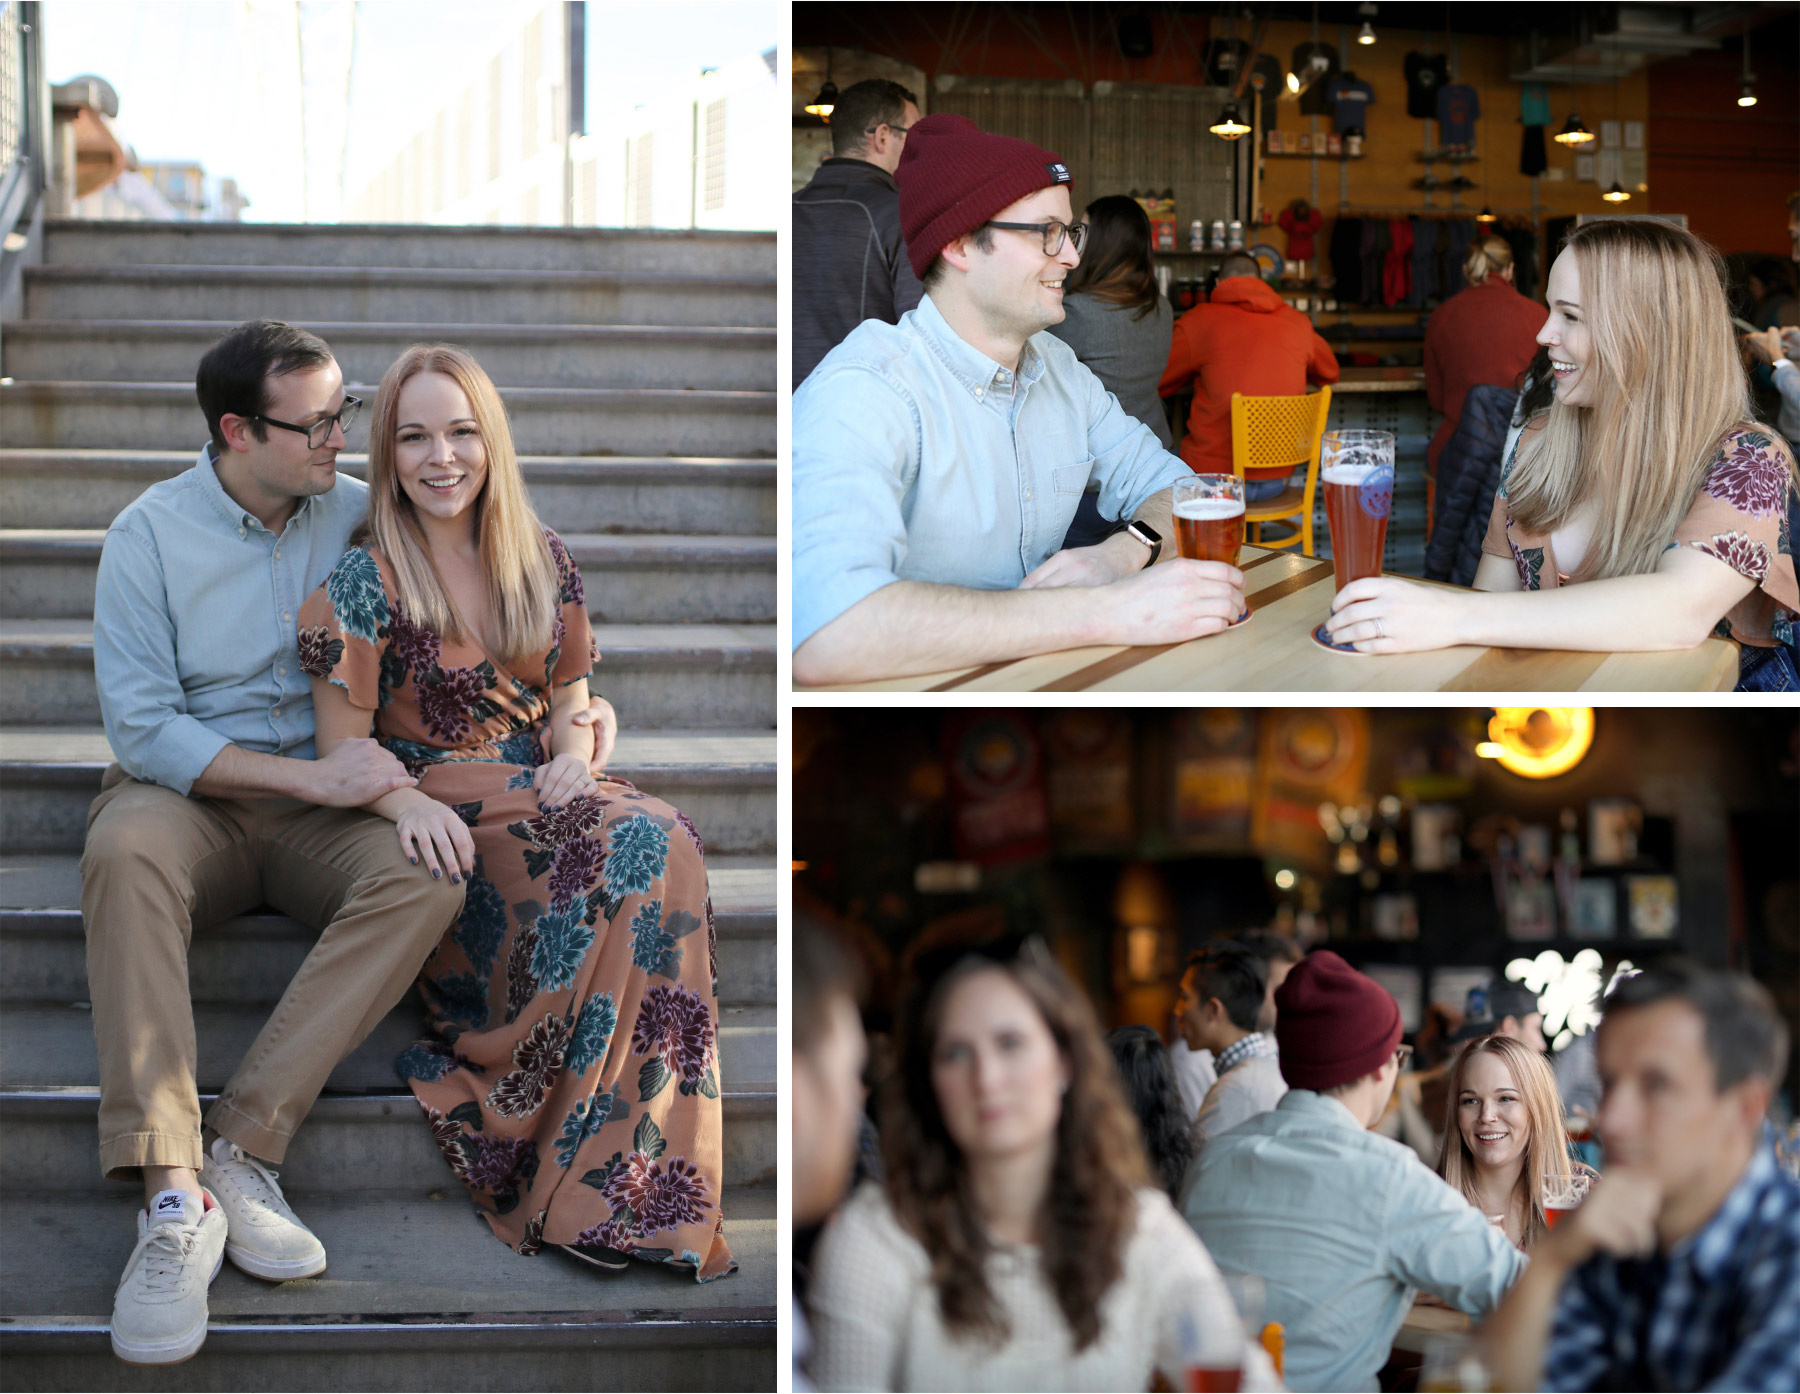 11-Vick-Photography-Fly-to-You-Engagement-Session-Denver-Colorado-Beer-Brewery-Steps-Danielle-and-Tom.jpg